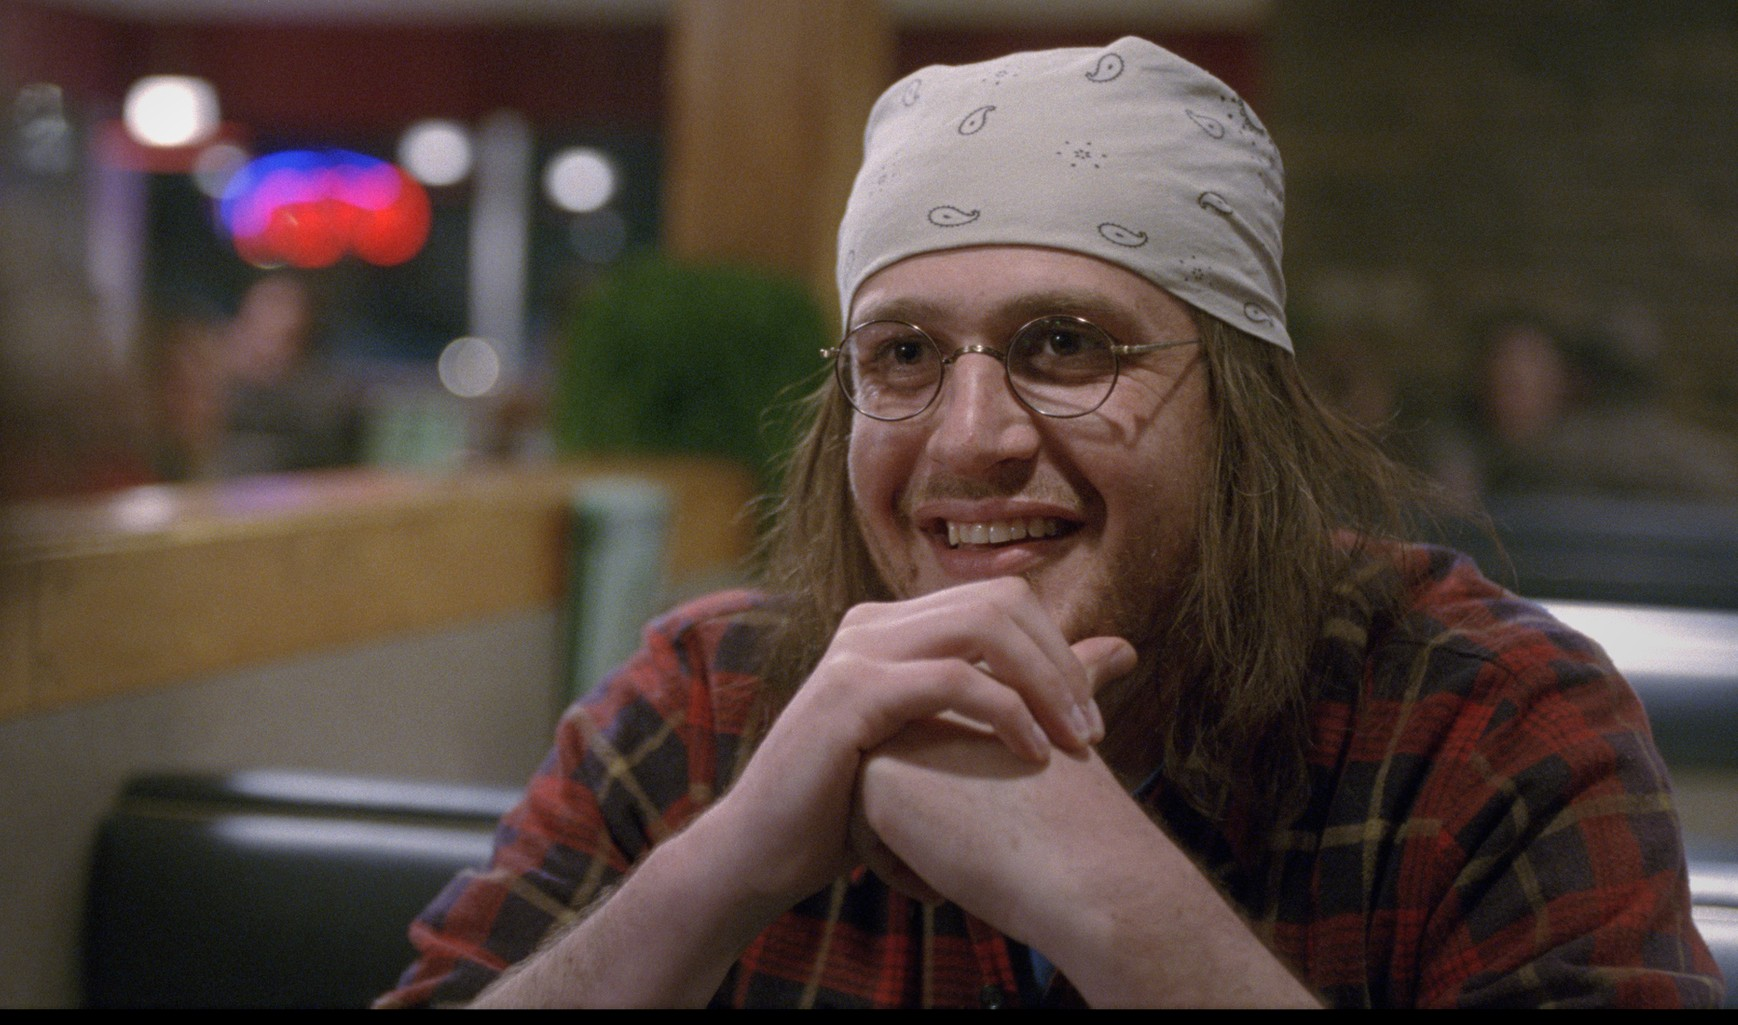 'The End of the Tour' is about writer David Foster Wallace, who electrified the literary world. Wallace is portrayed by Jason Segel.